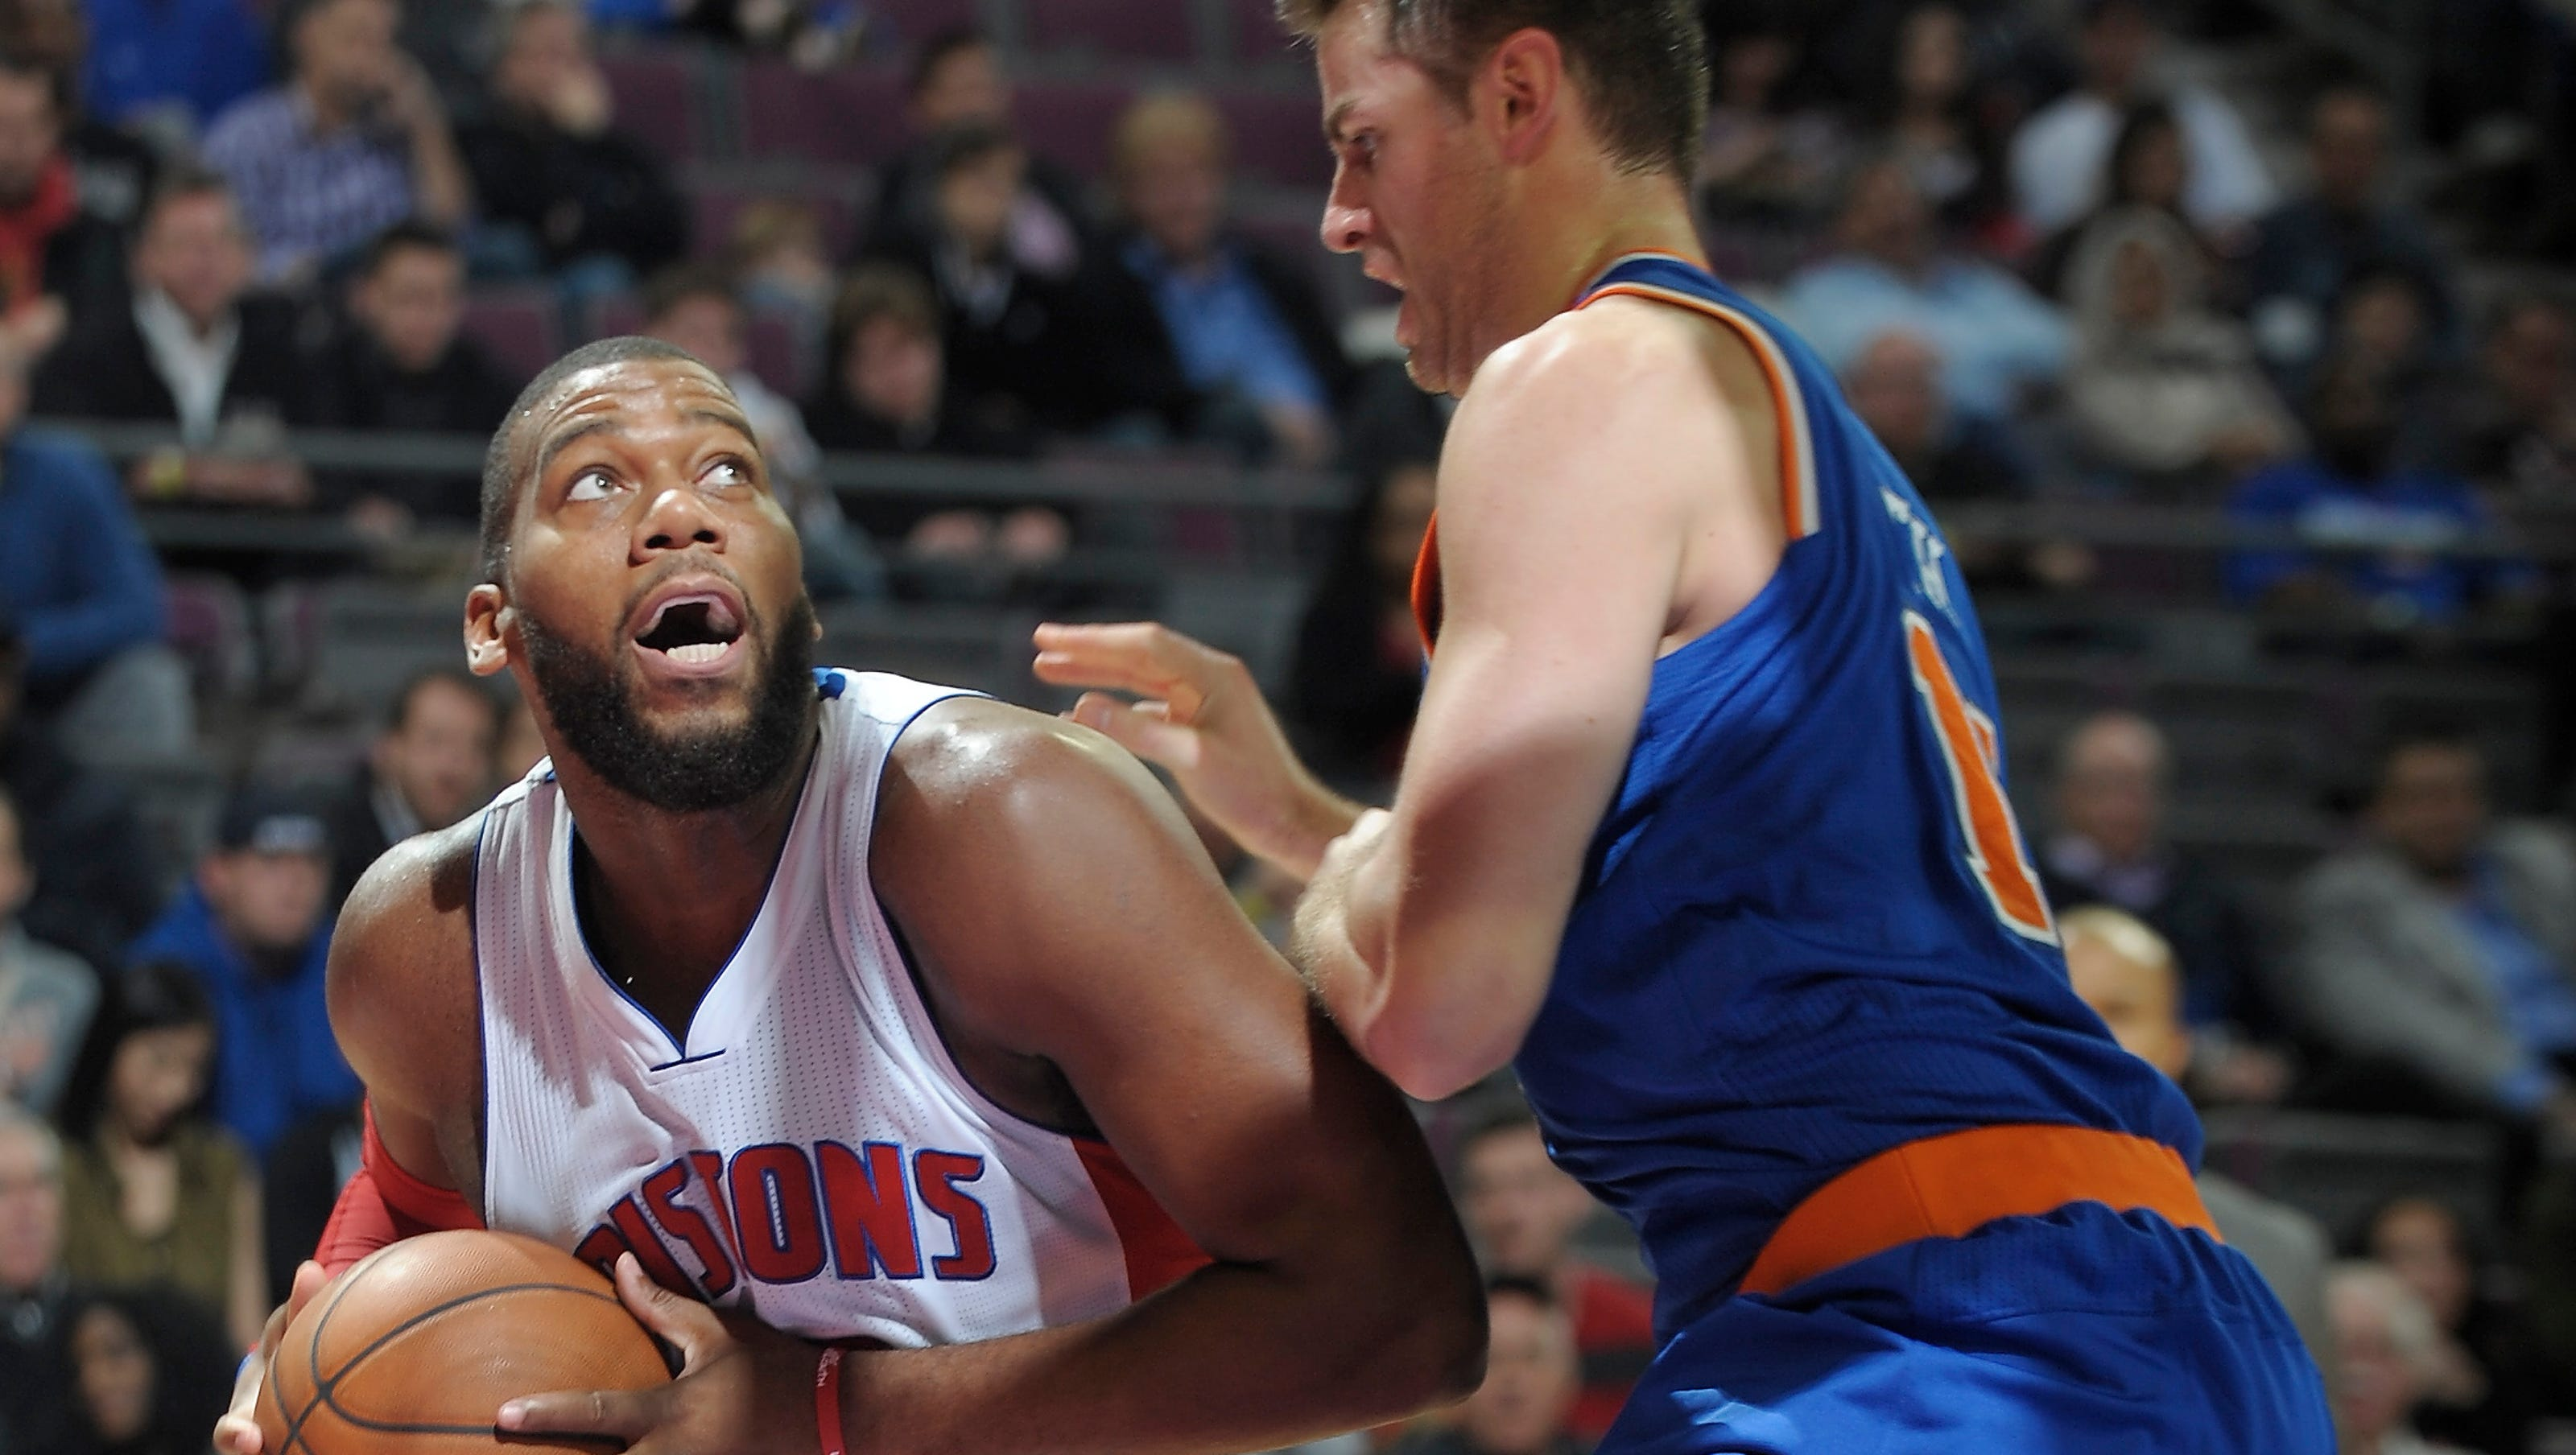 Despite wobbly finish, Pistons earn first victory